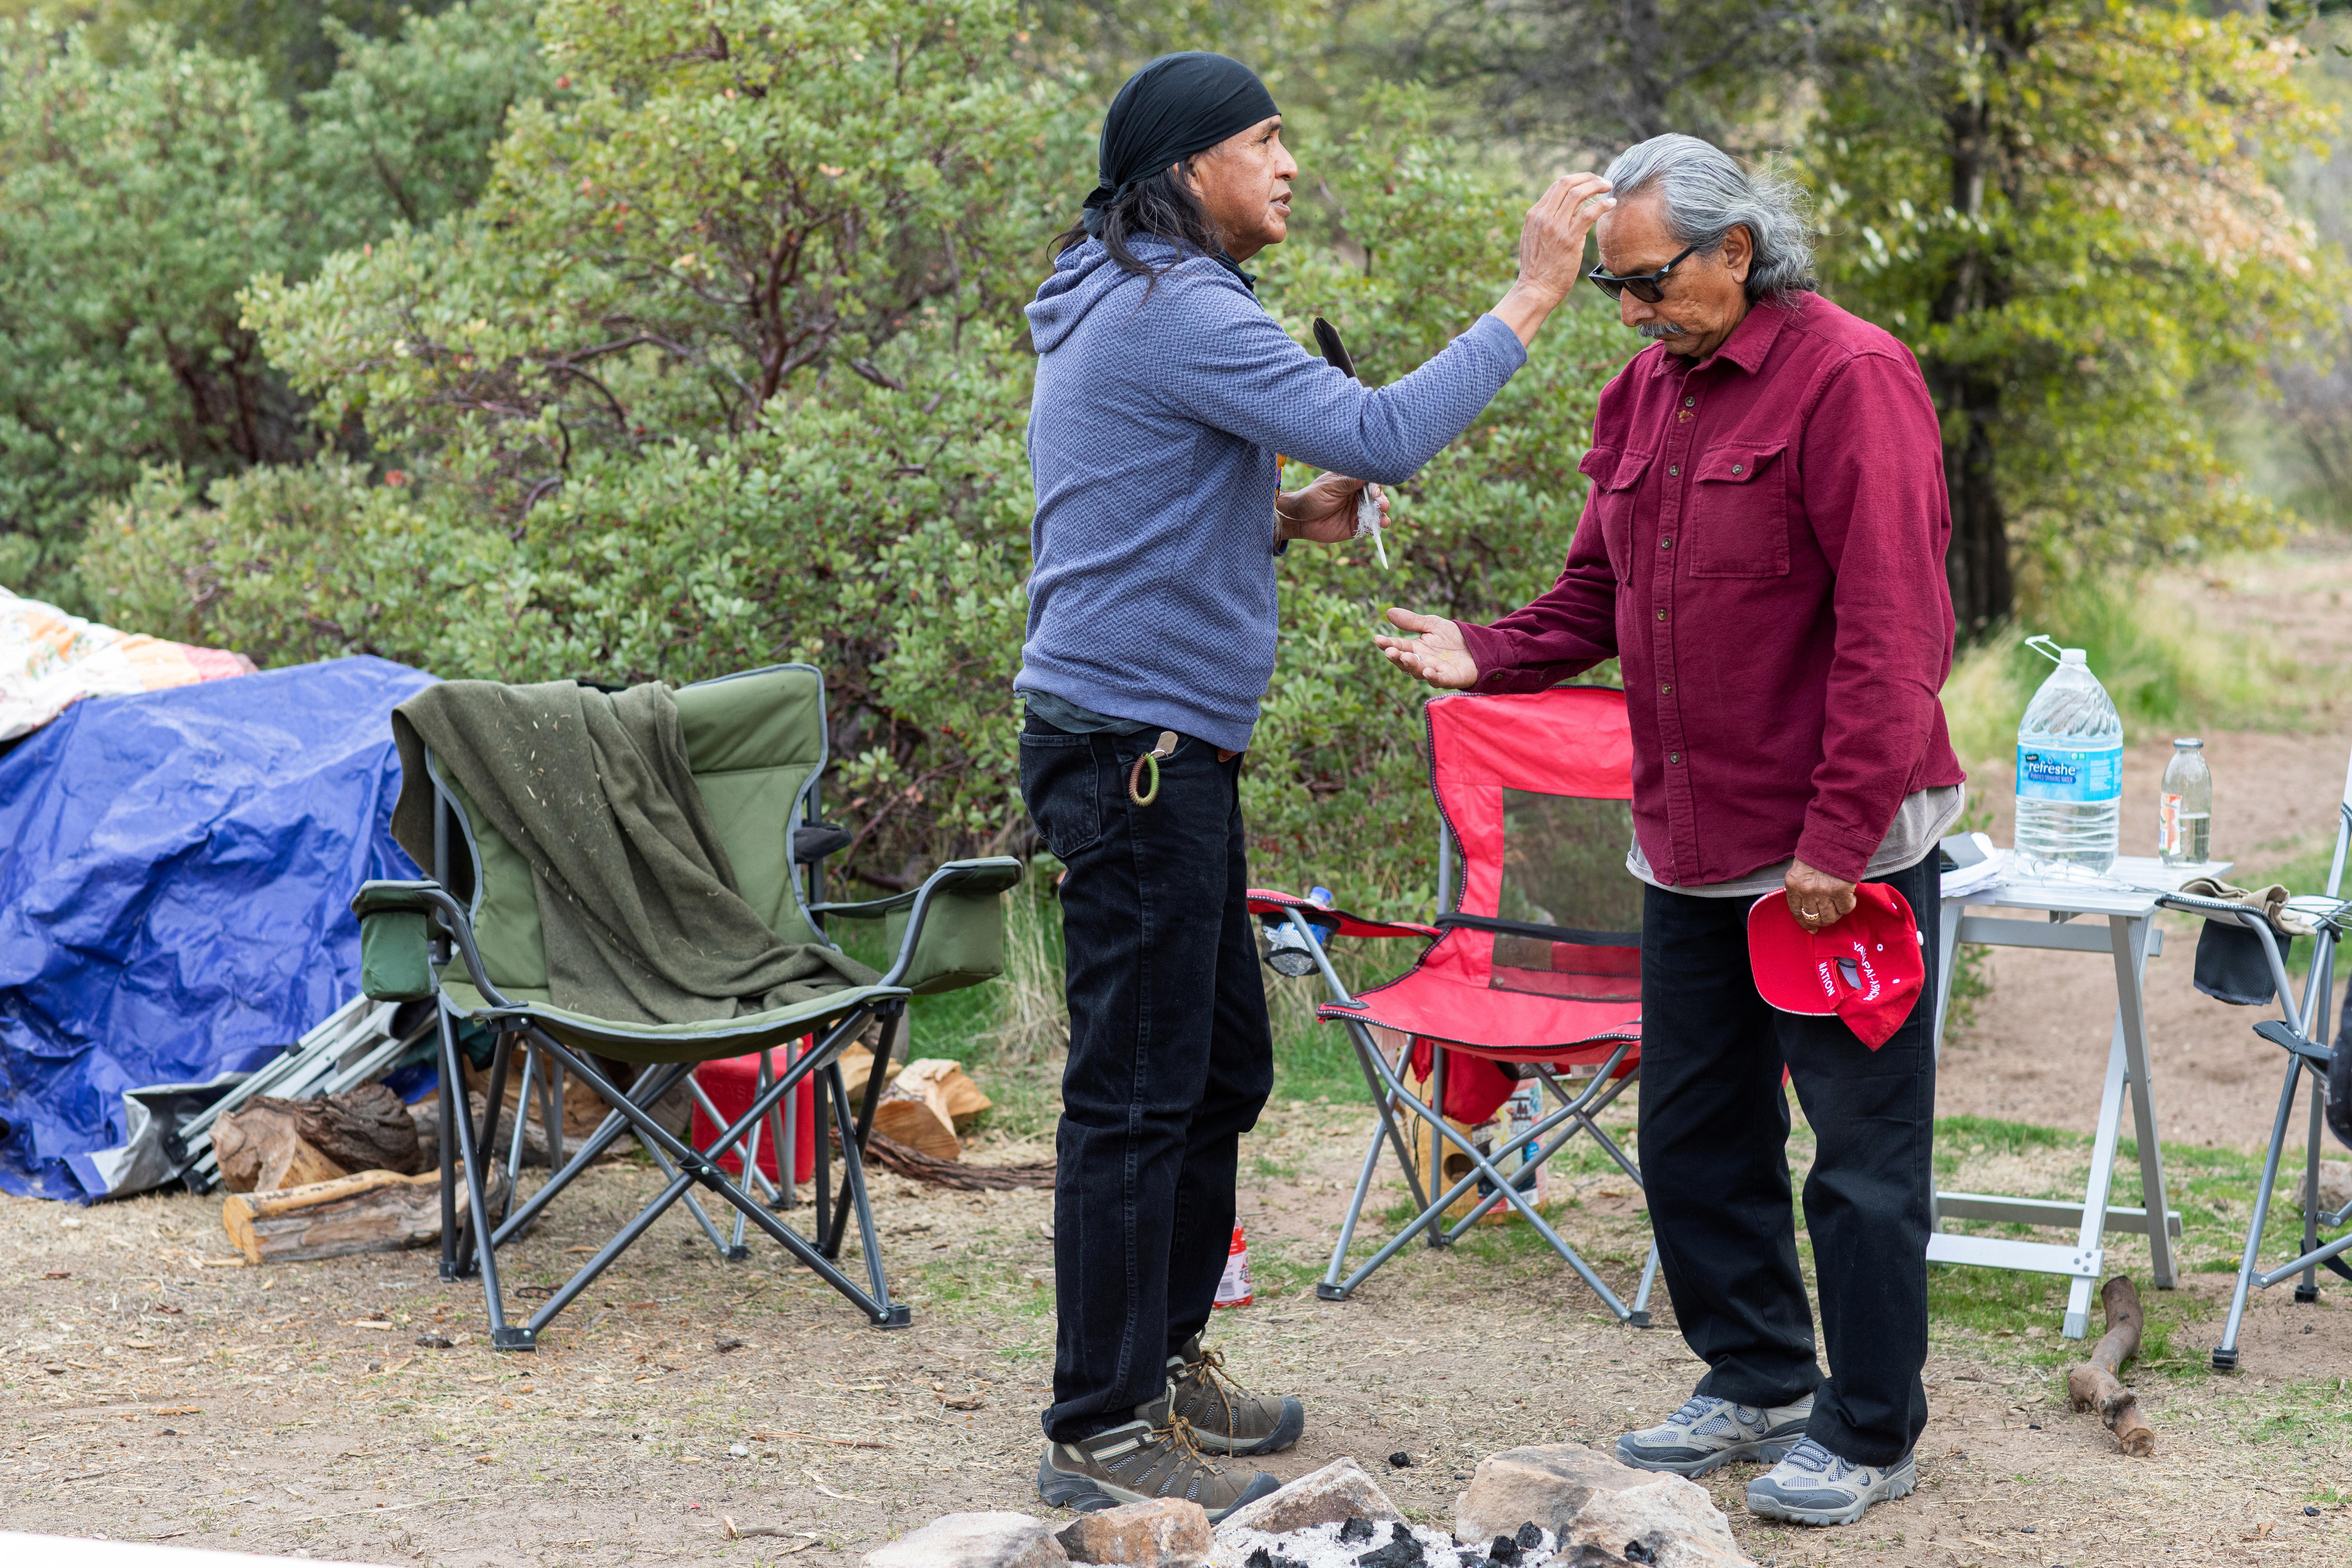 Former chairman of the San Carlos Apache Tribe Dr. Wendsler Nosie, Sr., left, prays over Daniel Mendoza at Chi'chil Bildagoteel as it is called in Apache, or Oak Flat Campground, in the Tonto National Forest near Miami, Arizona, U.S., March 29, 2021. Mendoza learned later in life that he is Chiricahua Apache and that his mom was adopted into a Mexican family. Mendoza traveled from San Diego to visit Oak Flat and meet fellow Chiricahua Apache Dr. Nosie after hearing about the fight to defend the land that many Apache people hold sacred. Picture taken March 29, 2021.  REUTERS/Caitlin O'Hara